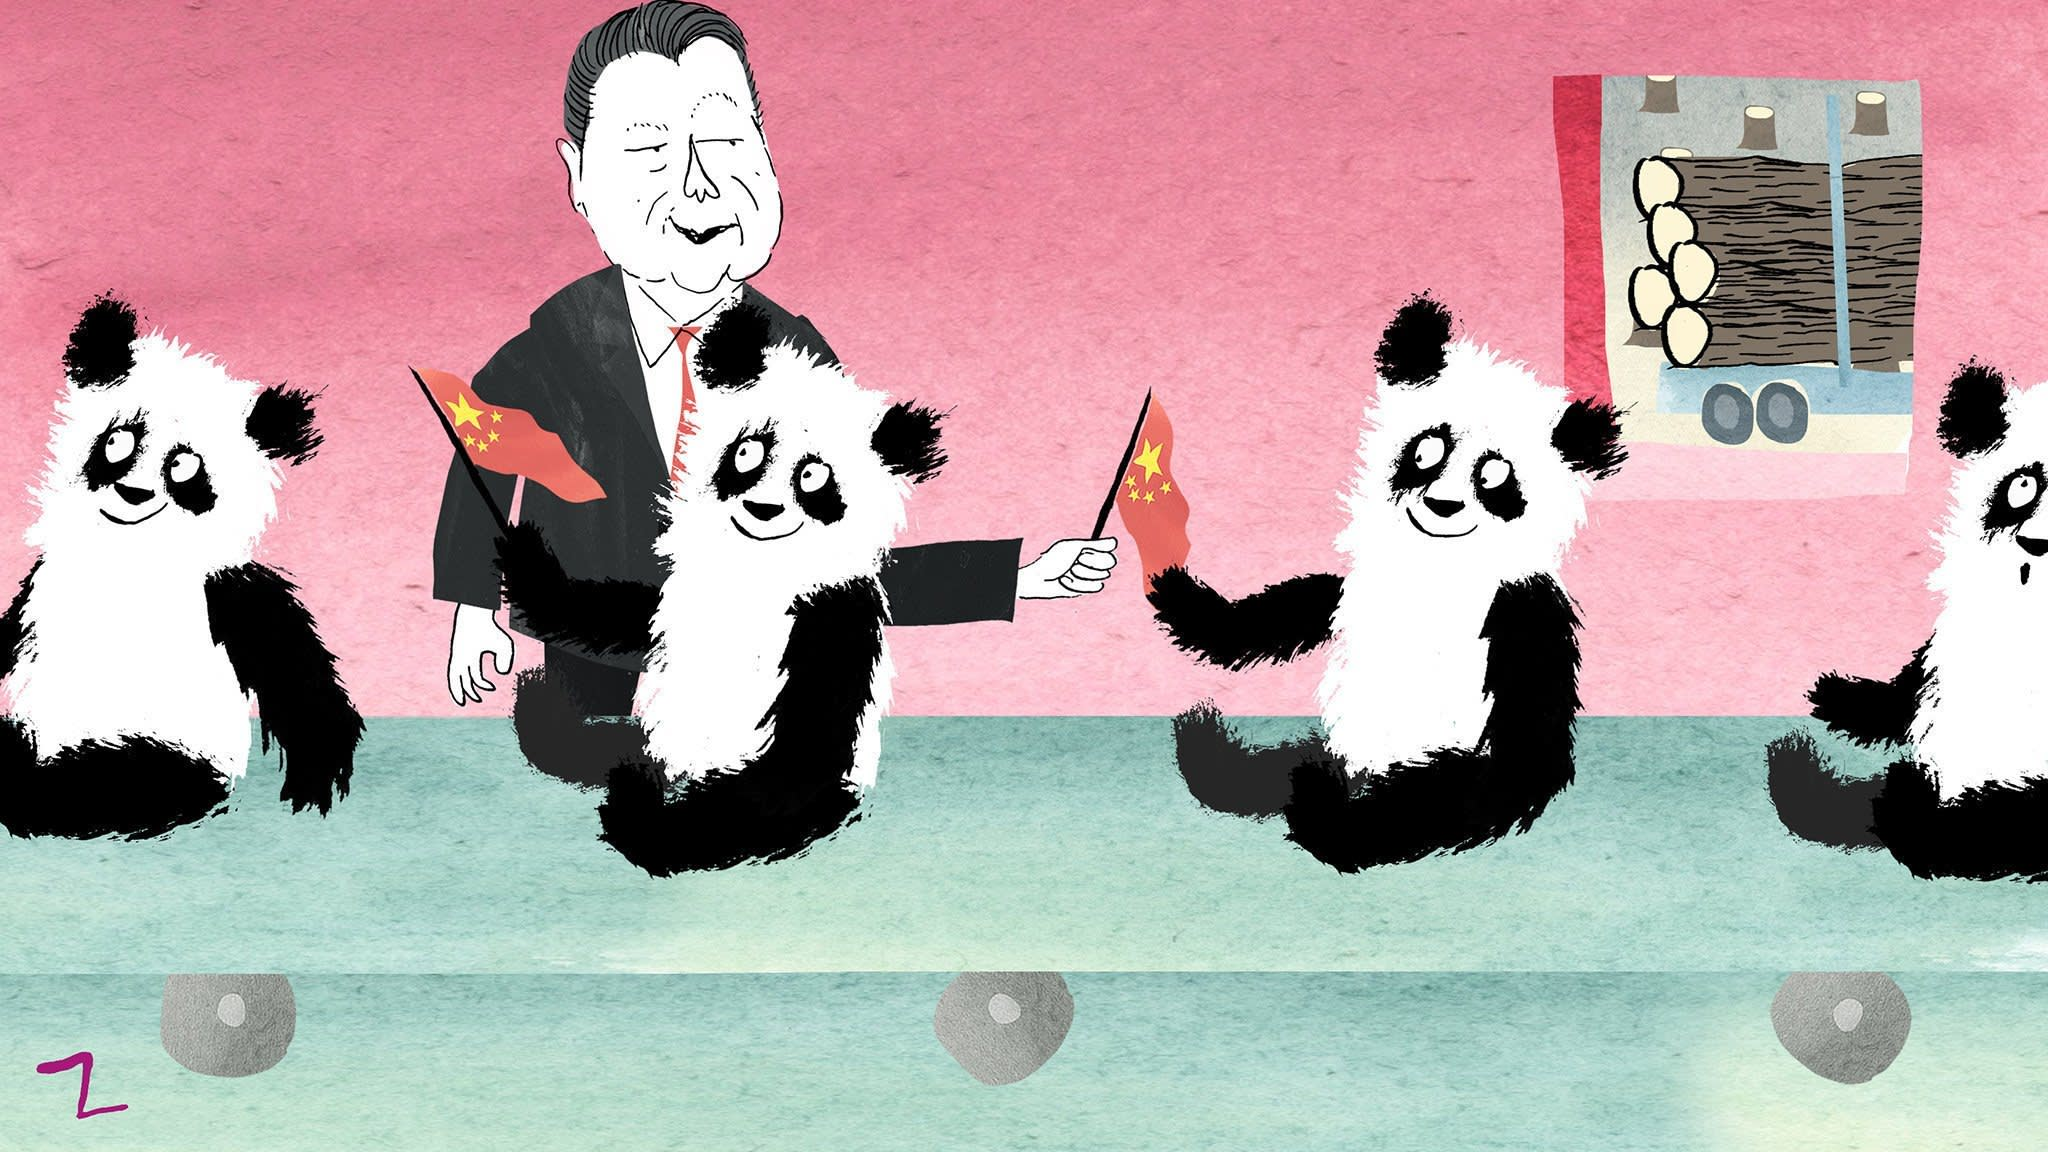 Soft Power: The Scramble for Popularity